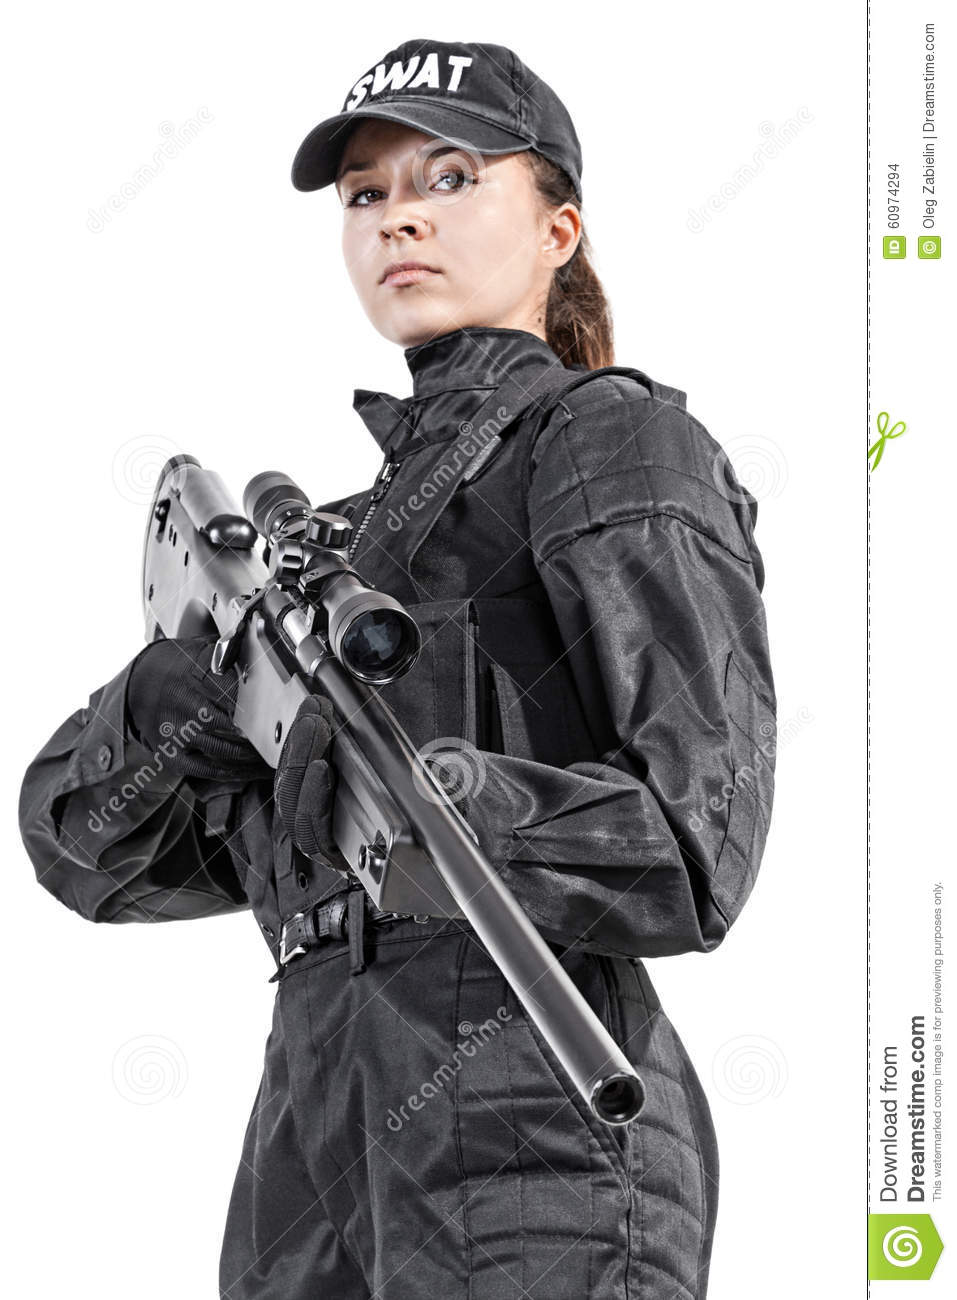 Female Cop Uniform 24